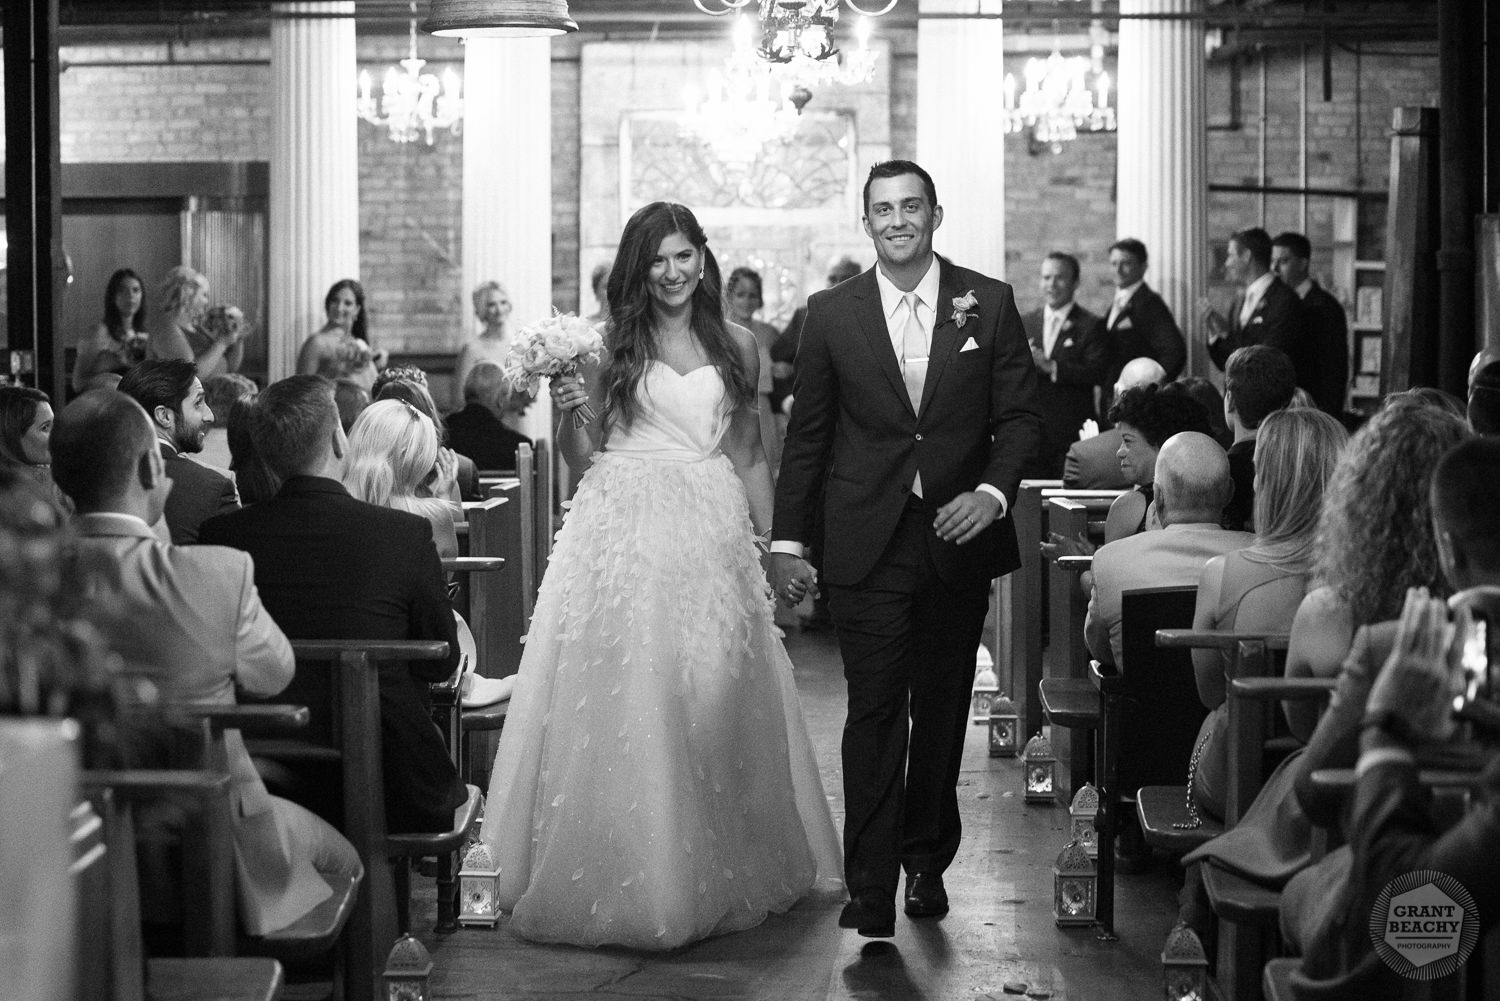 Chicago wedding photographer Grant Beachy-63.jpg